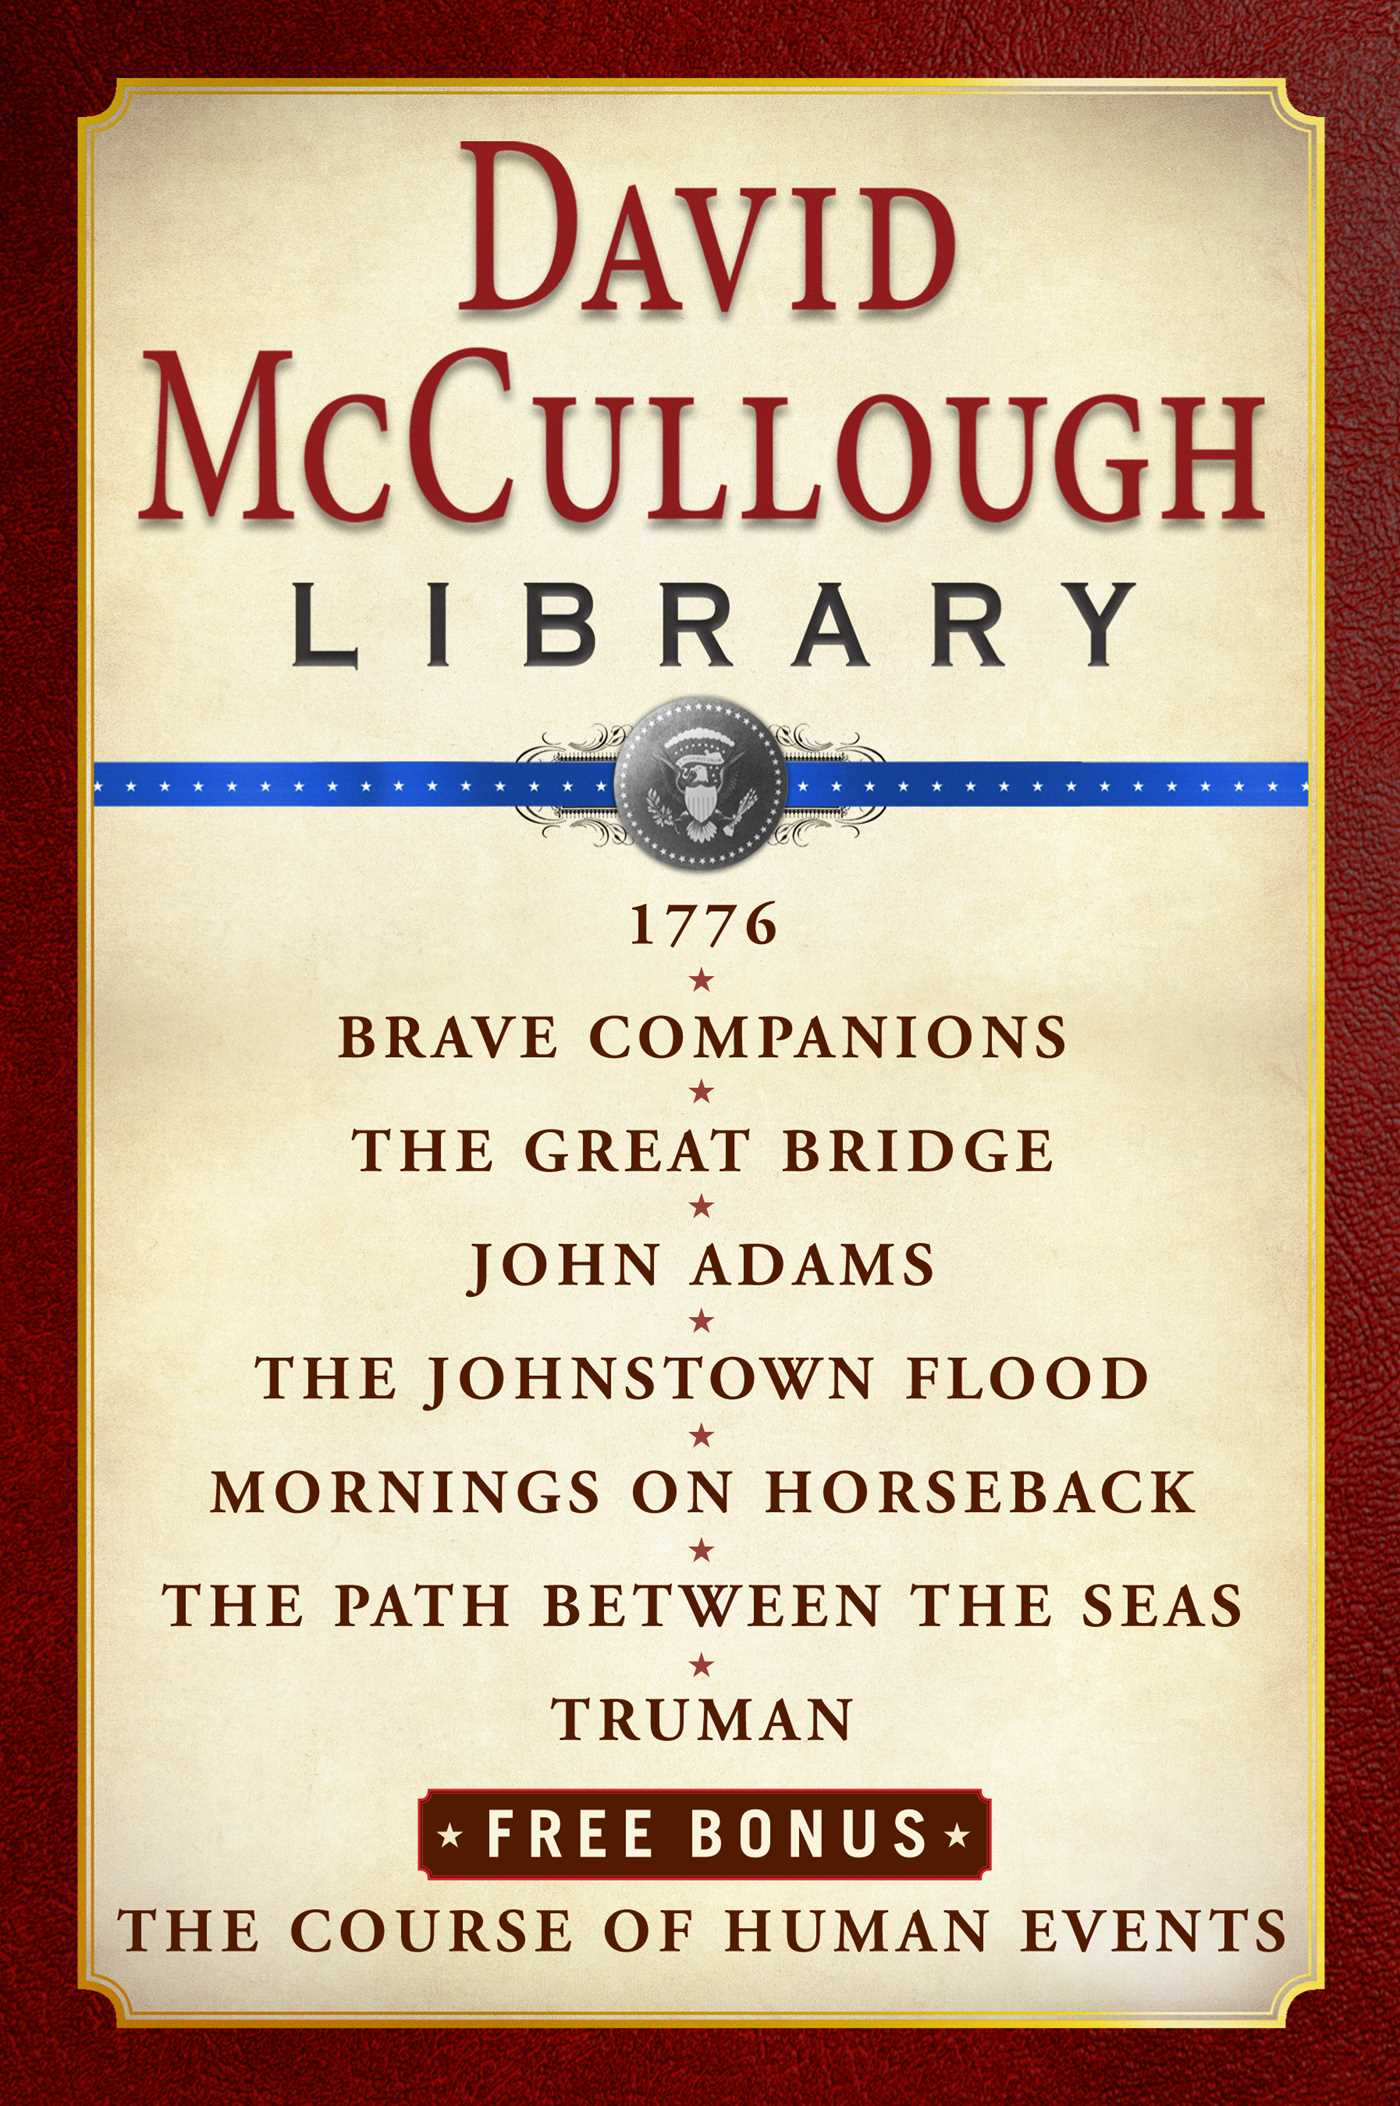 David Mccullough Library Ebook Box Set